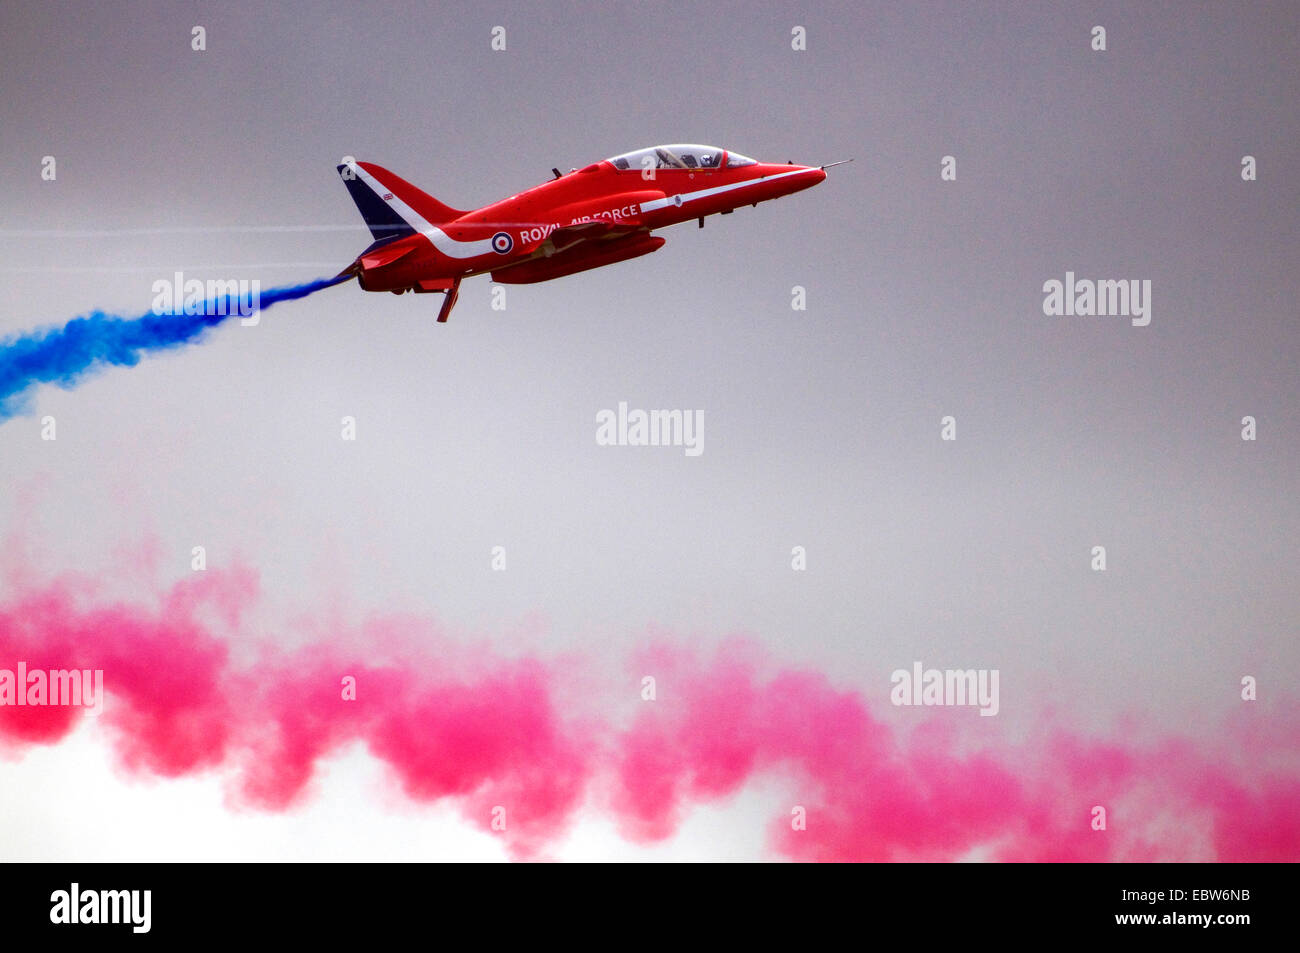 plane from an aerobatic squadron in the sky jetting smoke in the colours of the Union Jack, United Kingdom, Scotland - Stock Image